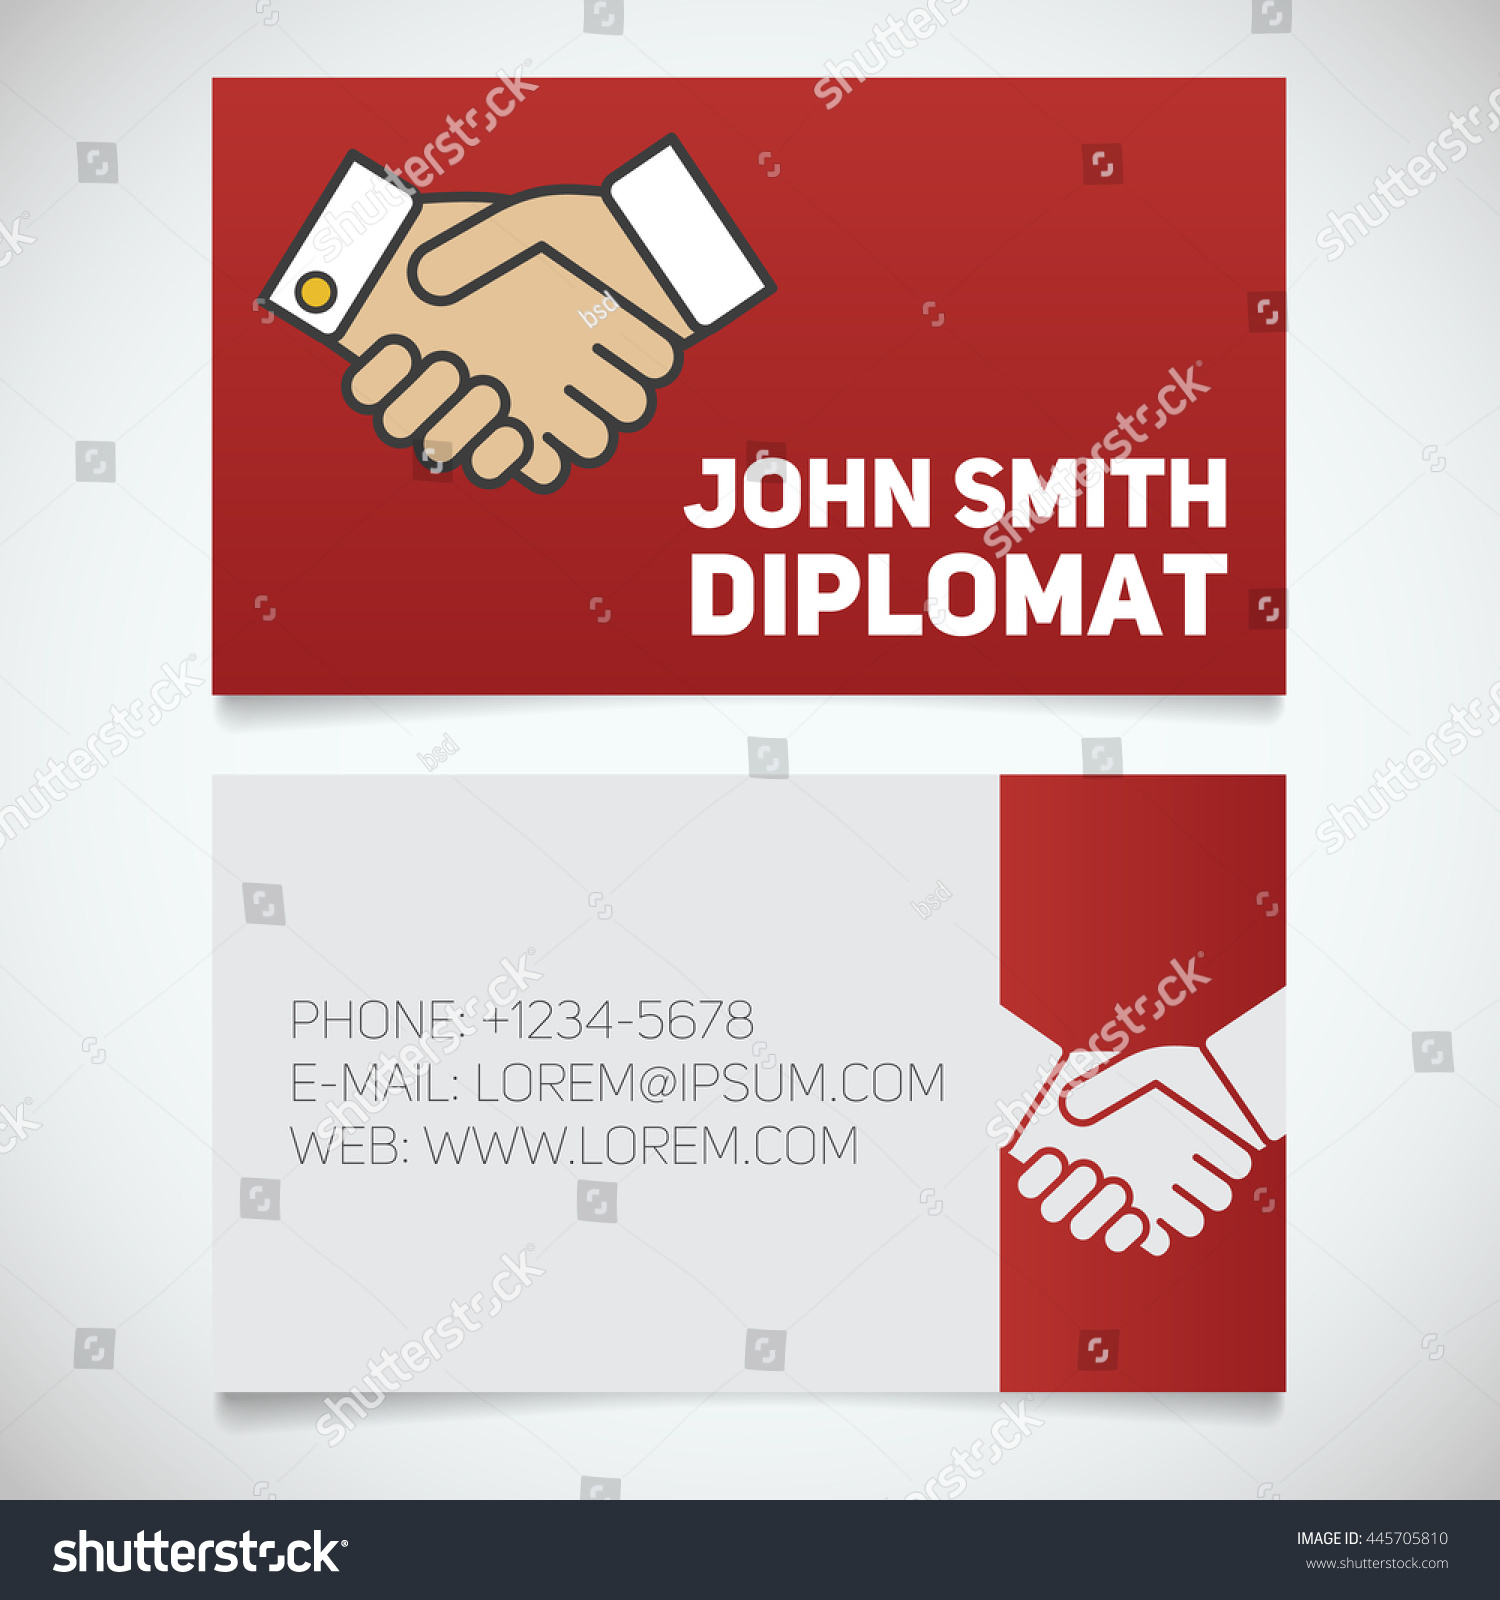 business card print template handshake logo stock vector